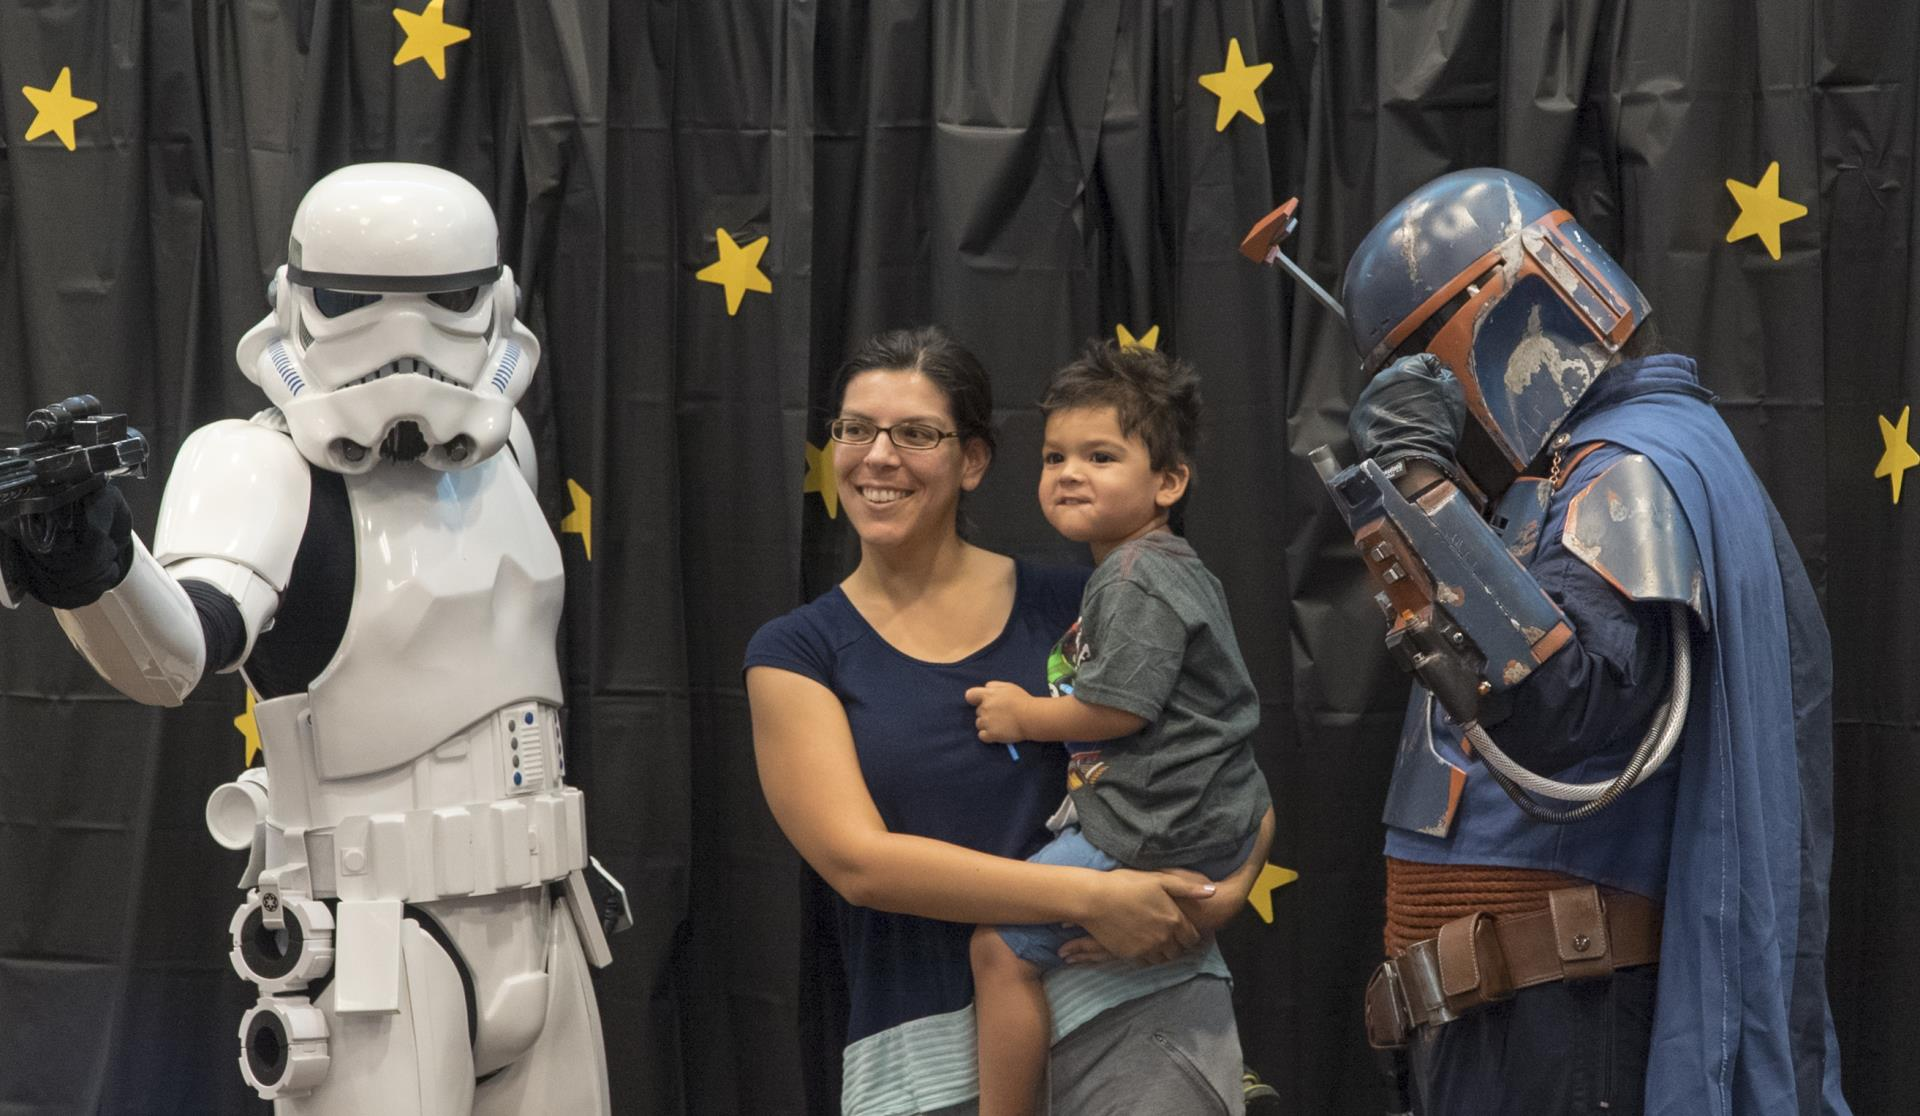 Stormtrooper photo booth 2